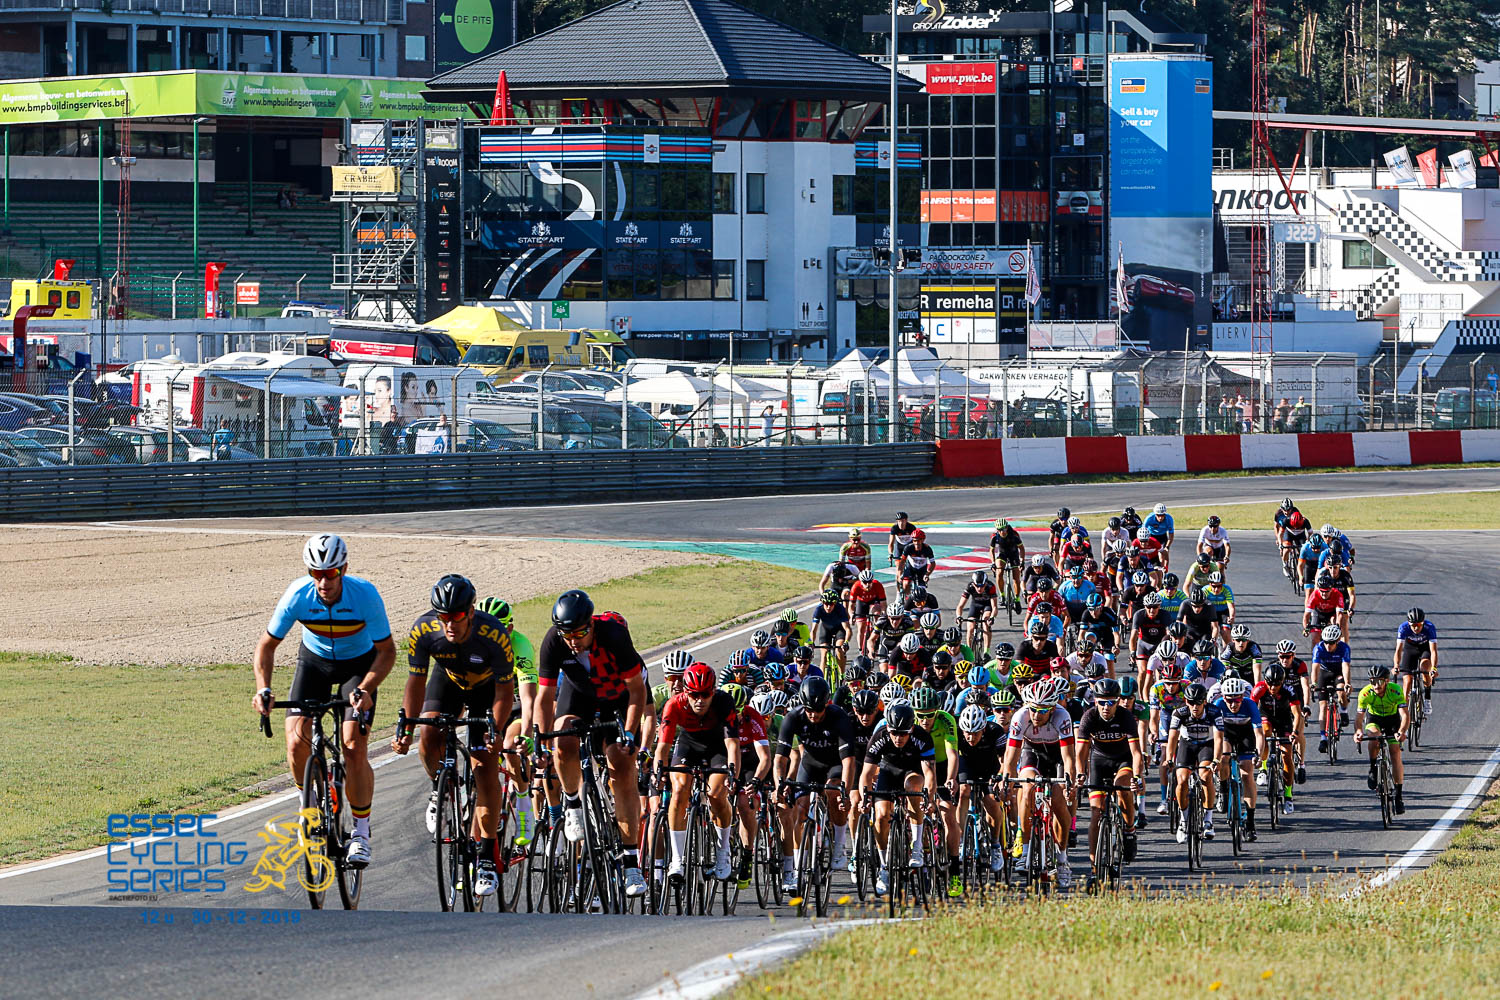 ESSEC 12 HOURS CYCLING @ CIRCUIT ZOLDER